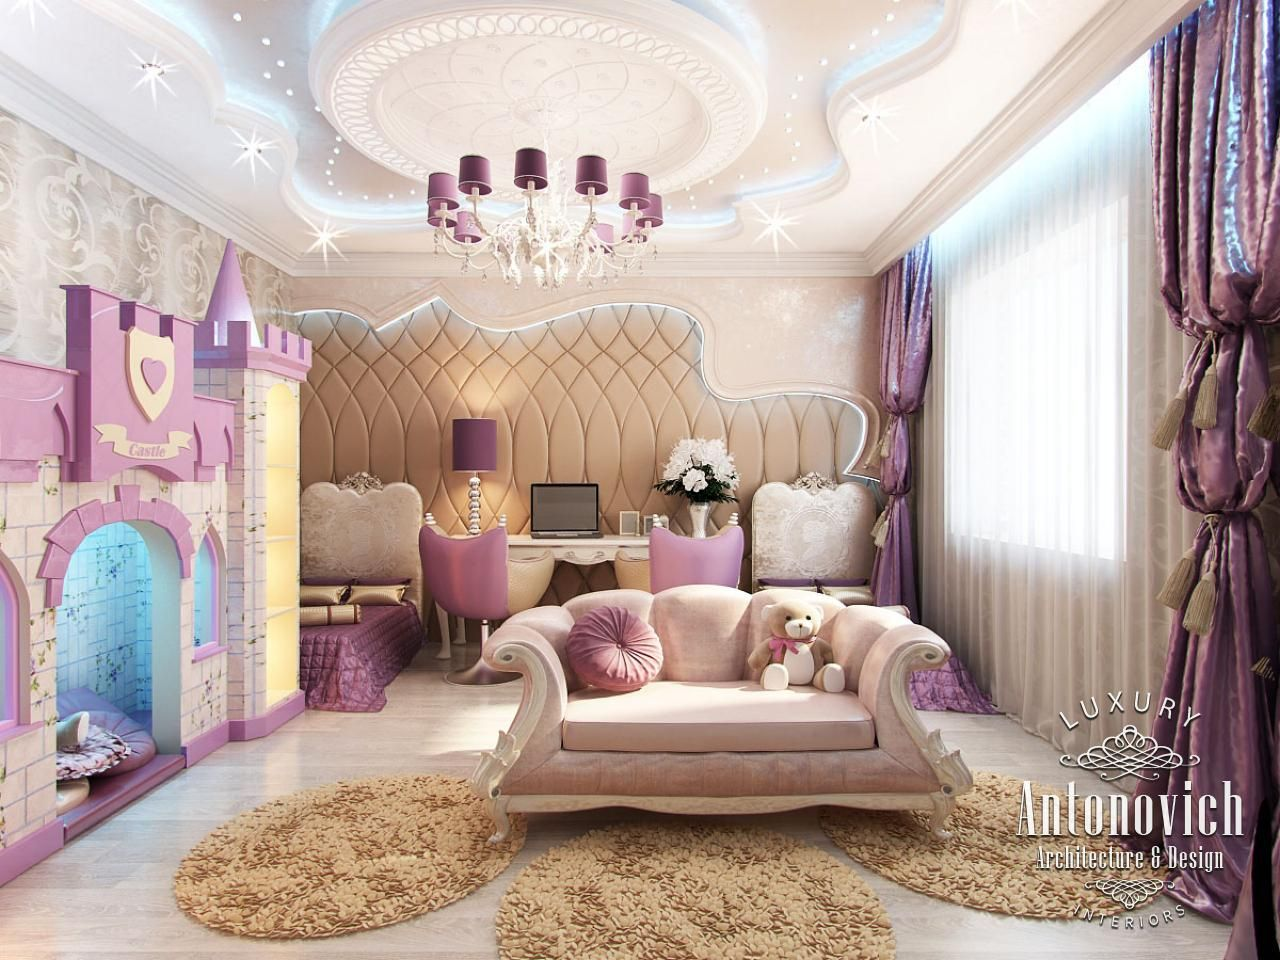 Girly home decor in projects of luxury antonovich design for Girly room decoration